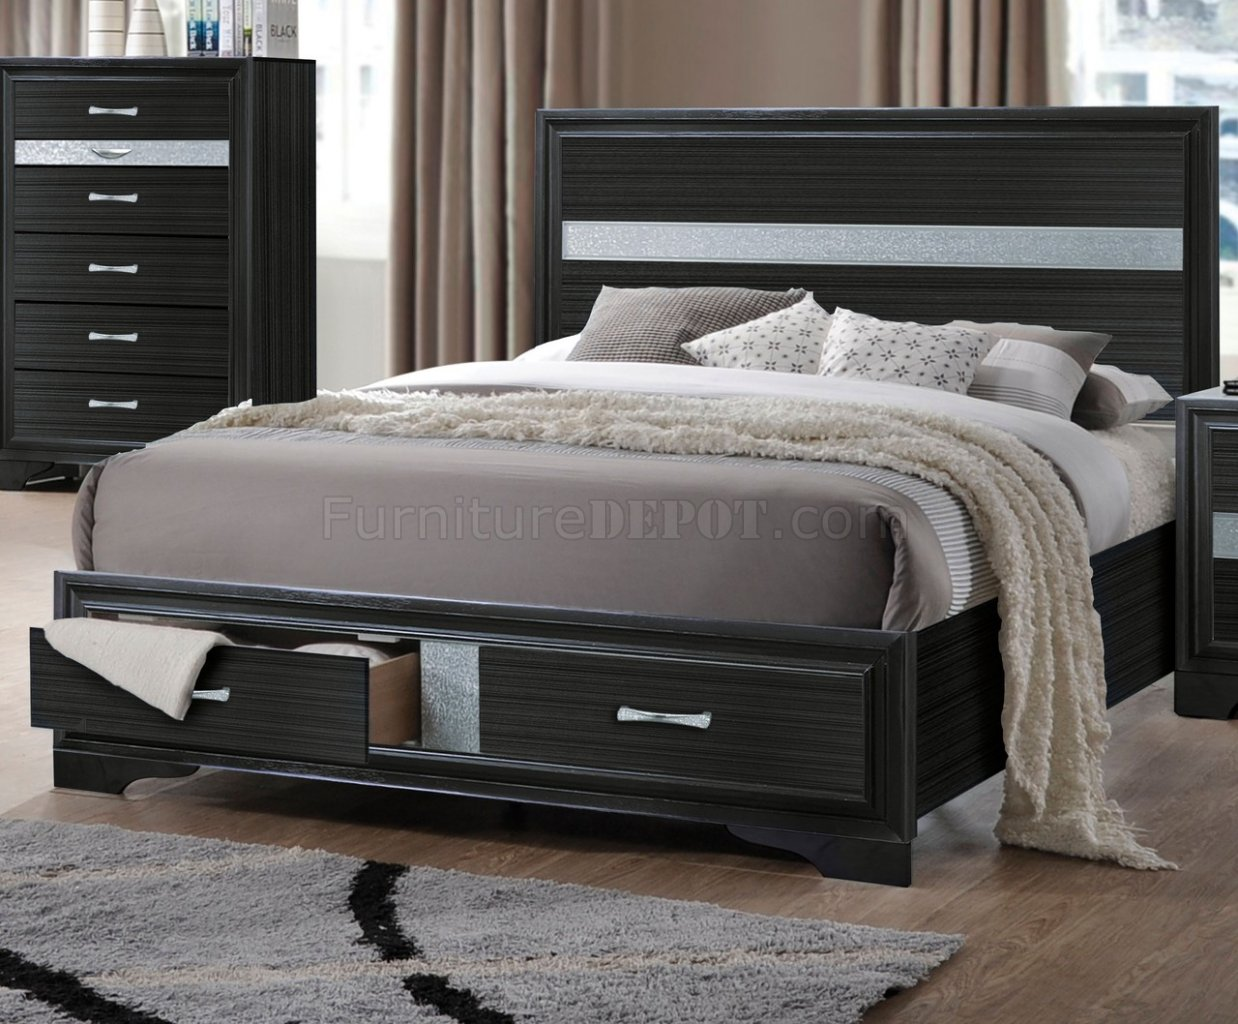 Contemporary Bedroom Set London Black By Acme Furniture: Naima Bedroom Set 5Pc 25900 In Black By Acme W/Storage Bed